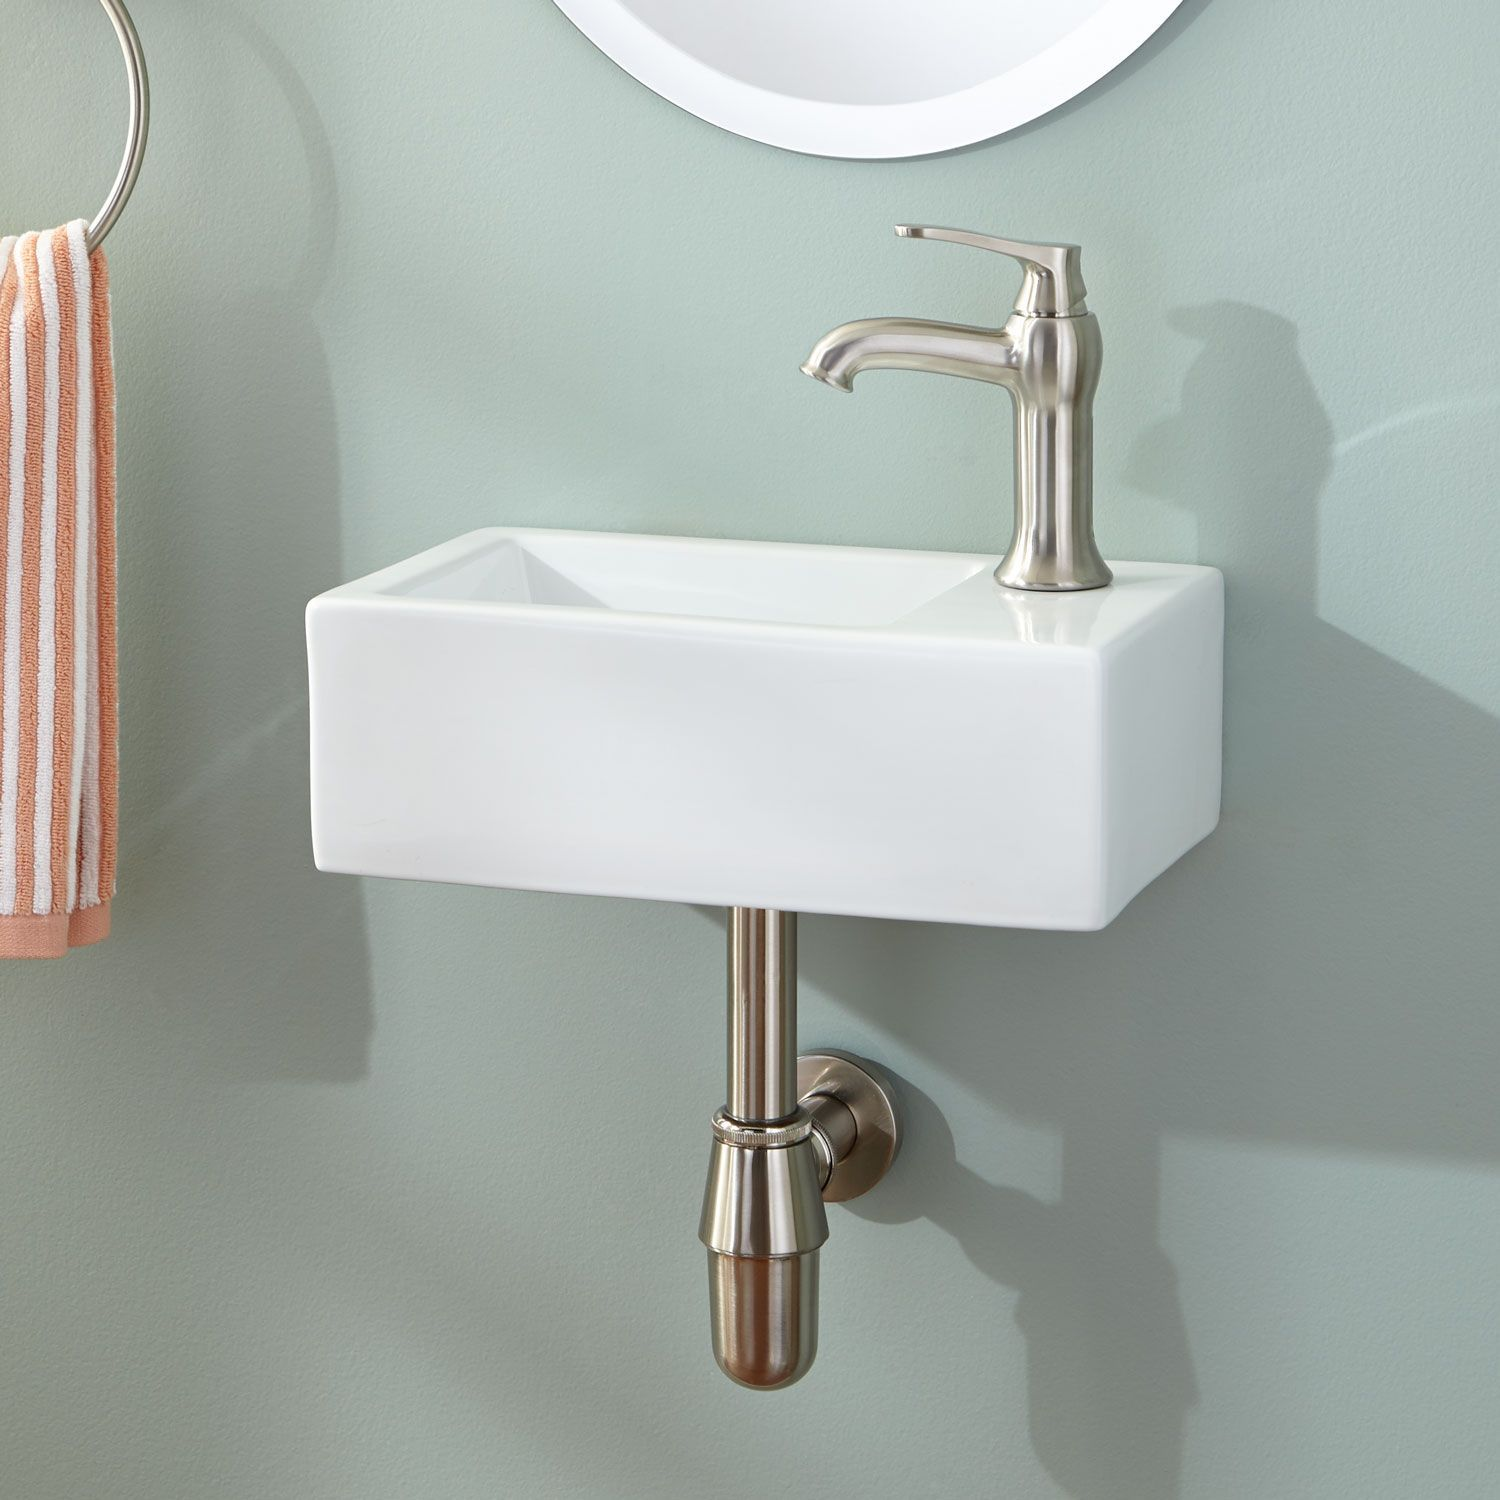 Corrie Mini Porcelain Wall Mount Bathroom Sink Wall Mounted